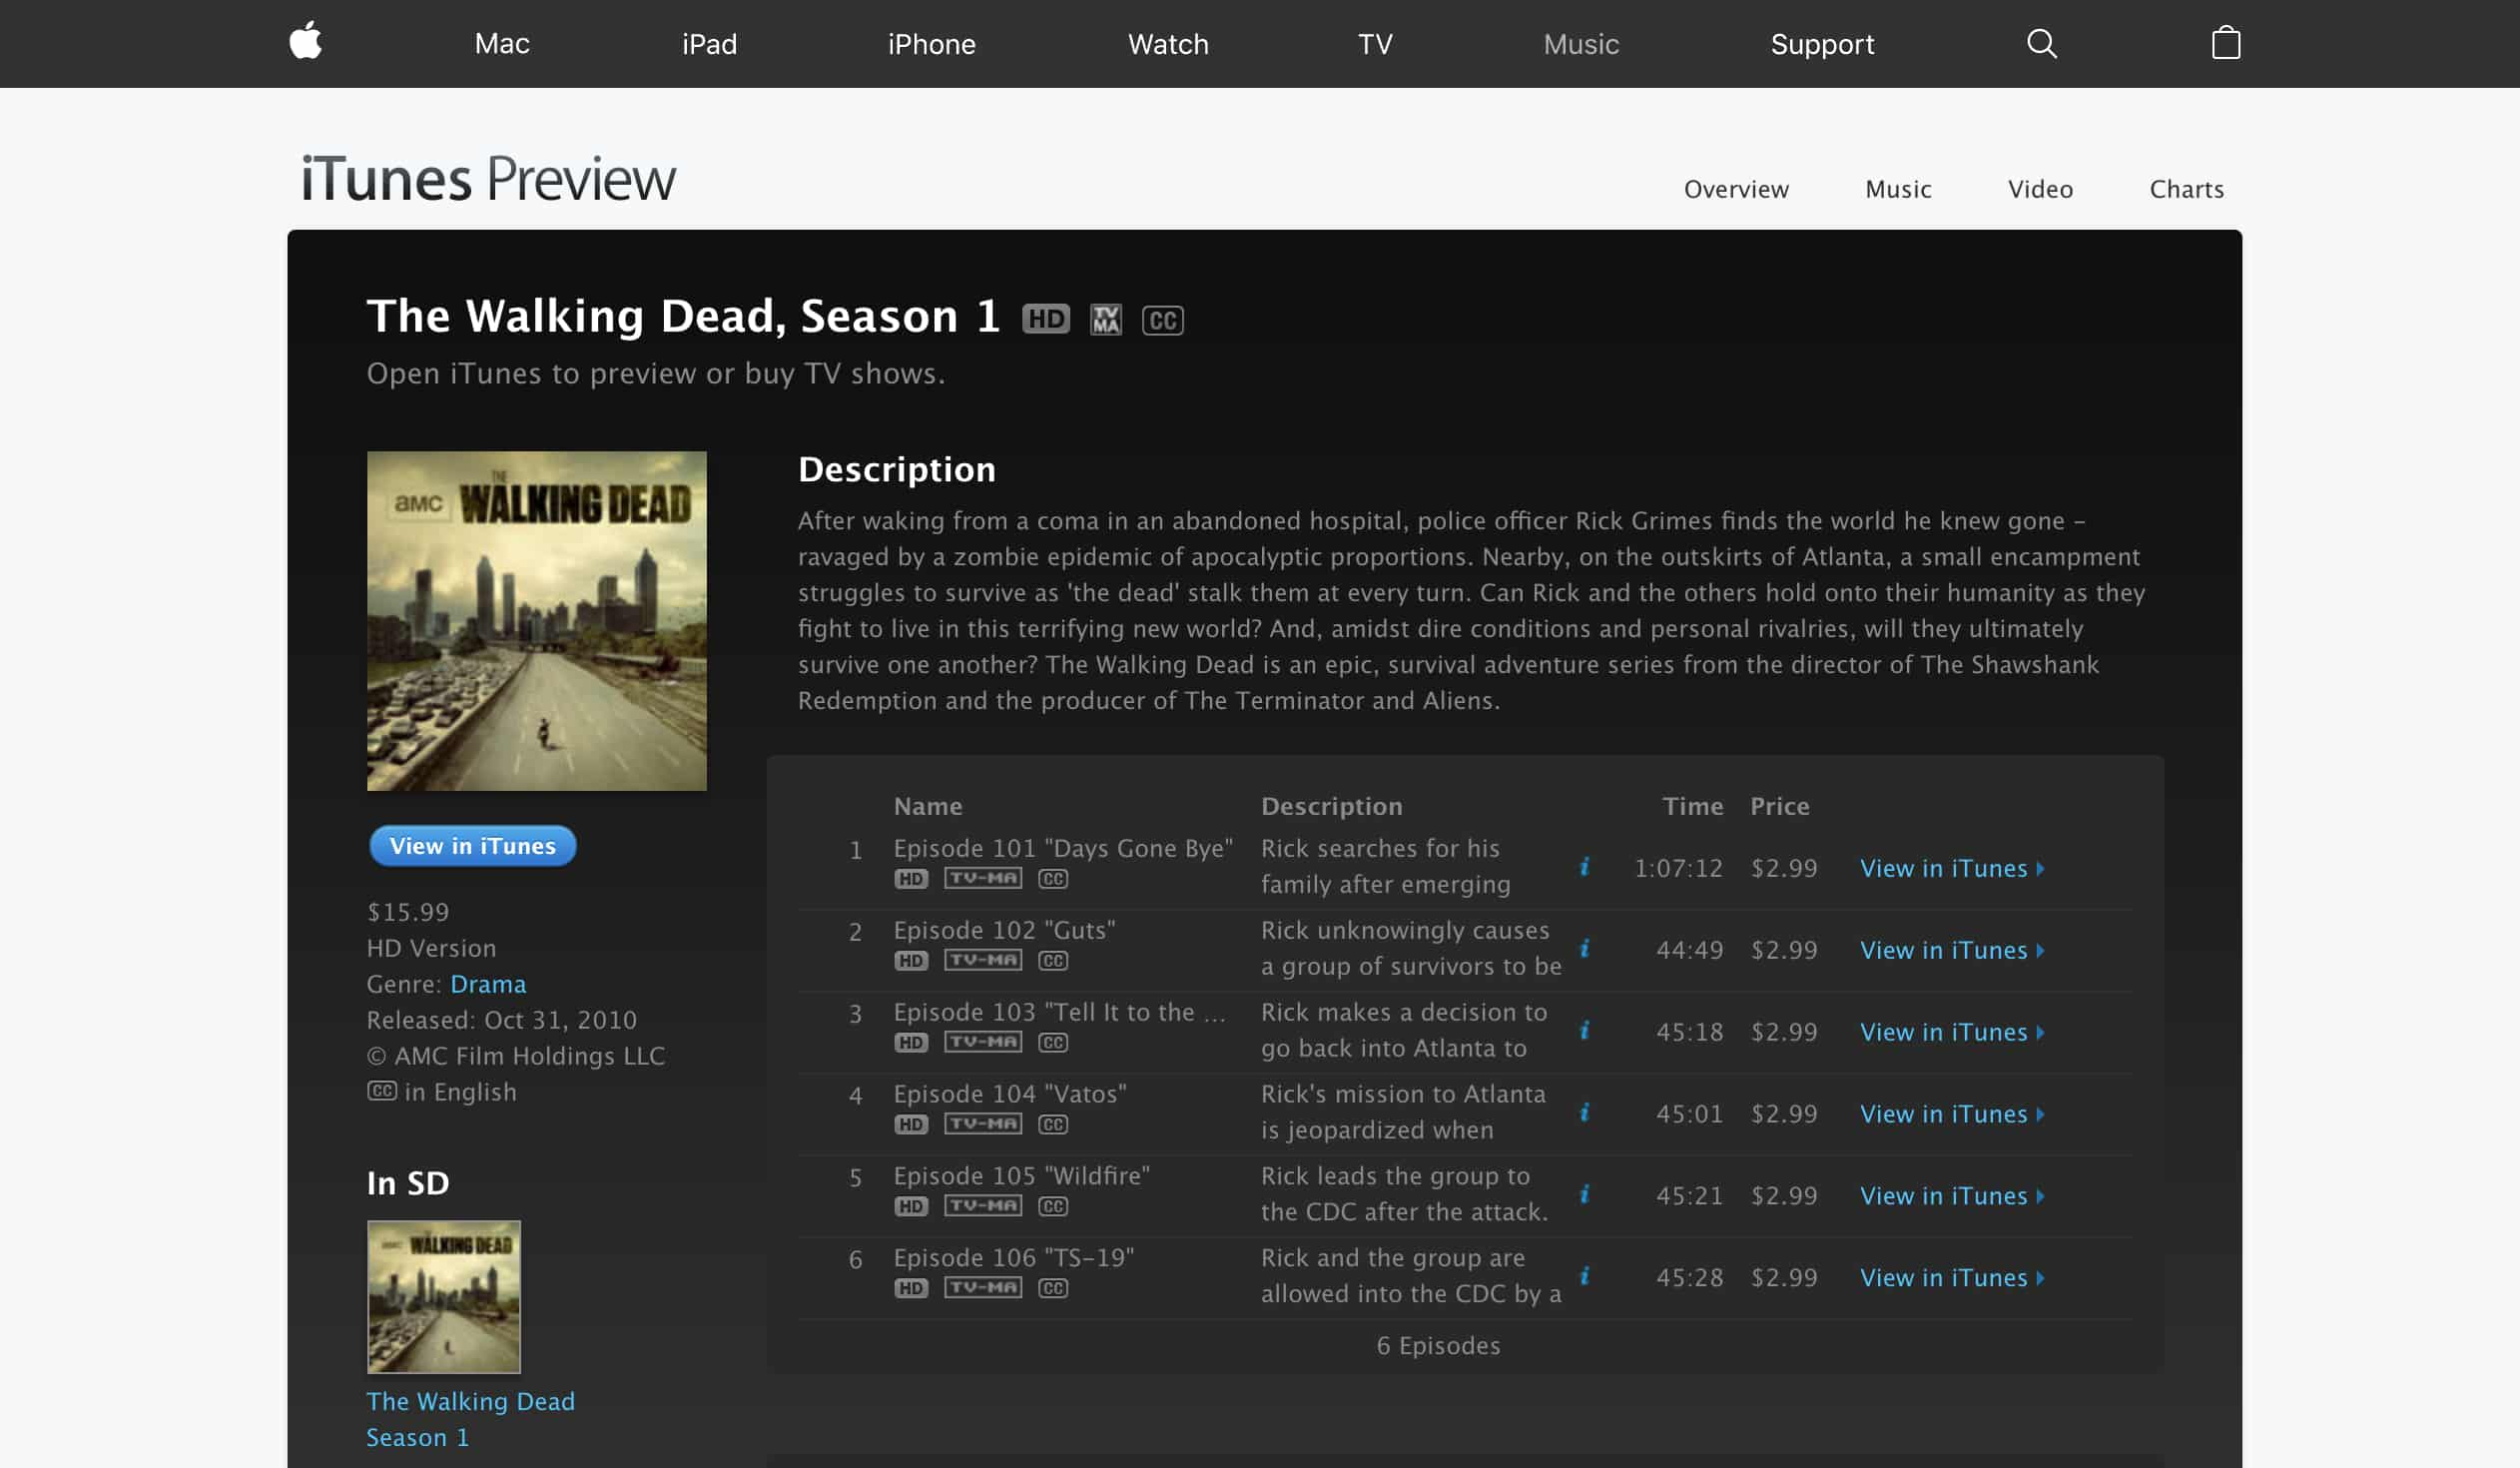 Apple's iTunes Show Purchase